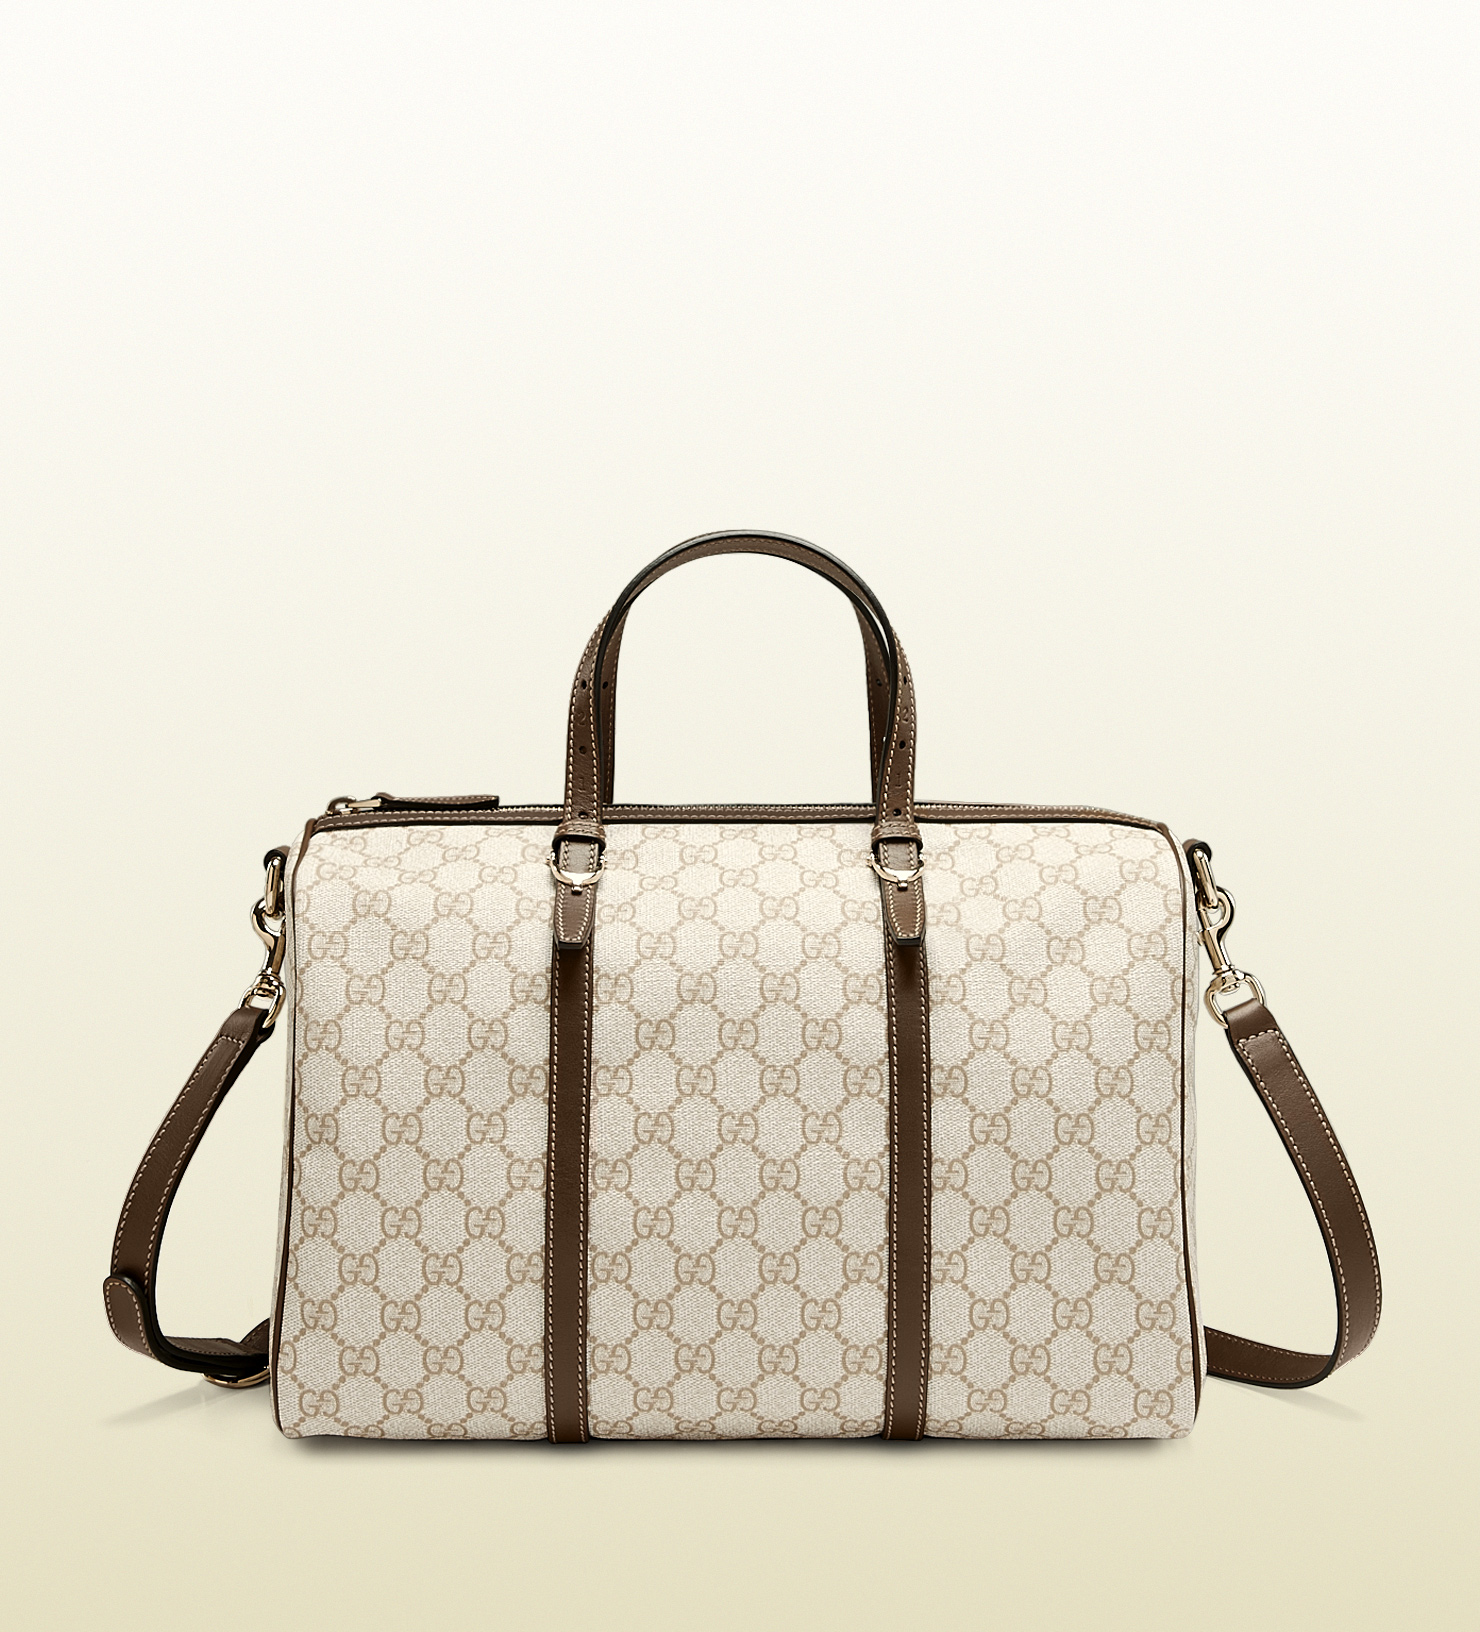 fdfb77802c3d Lyst - Gucci Nice Gg Supreme Canvas Boston Bag in White